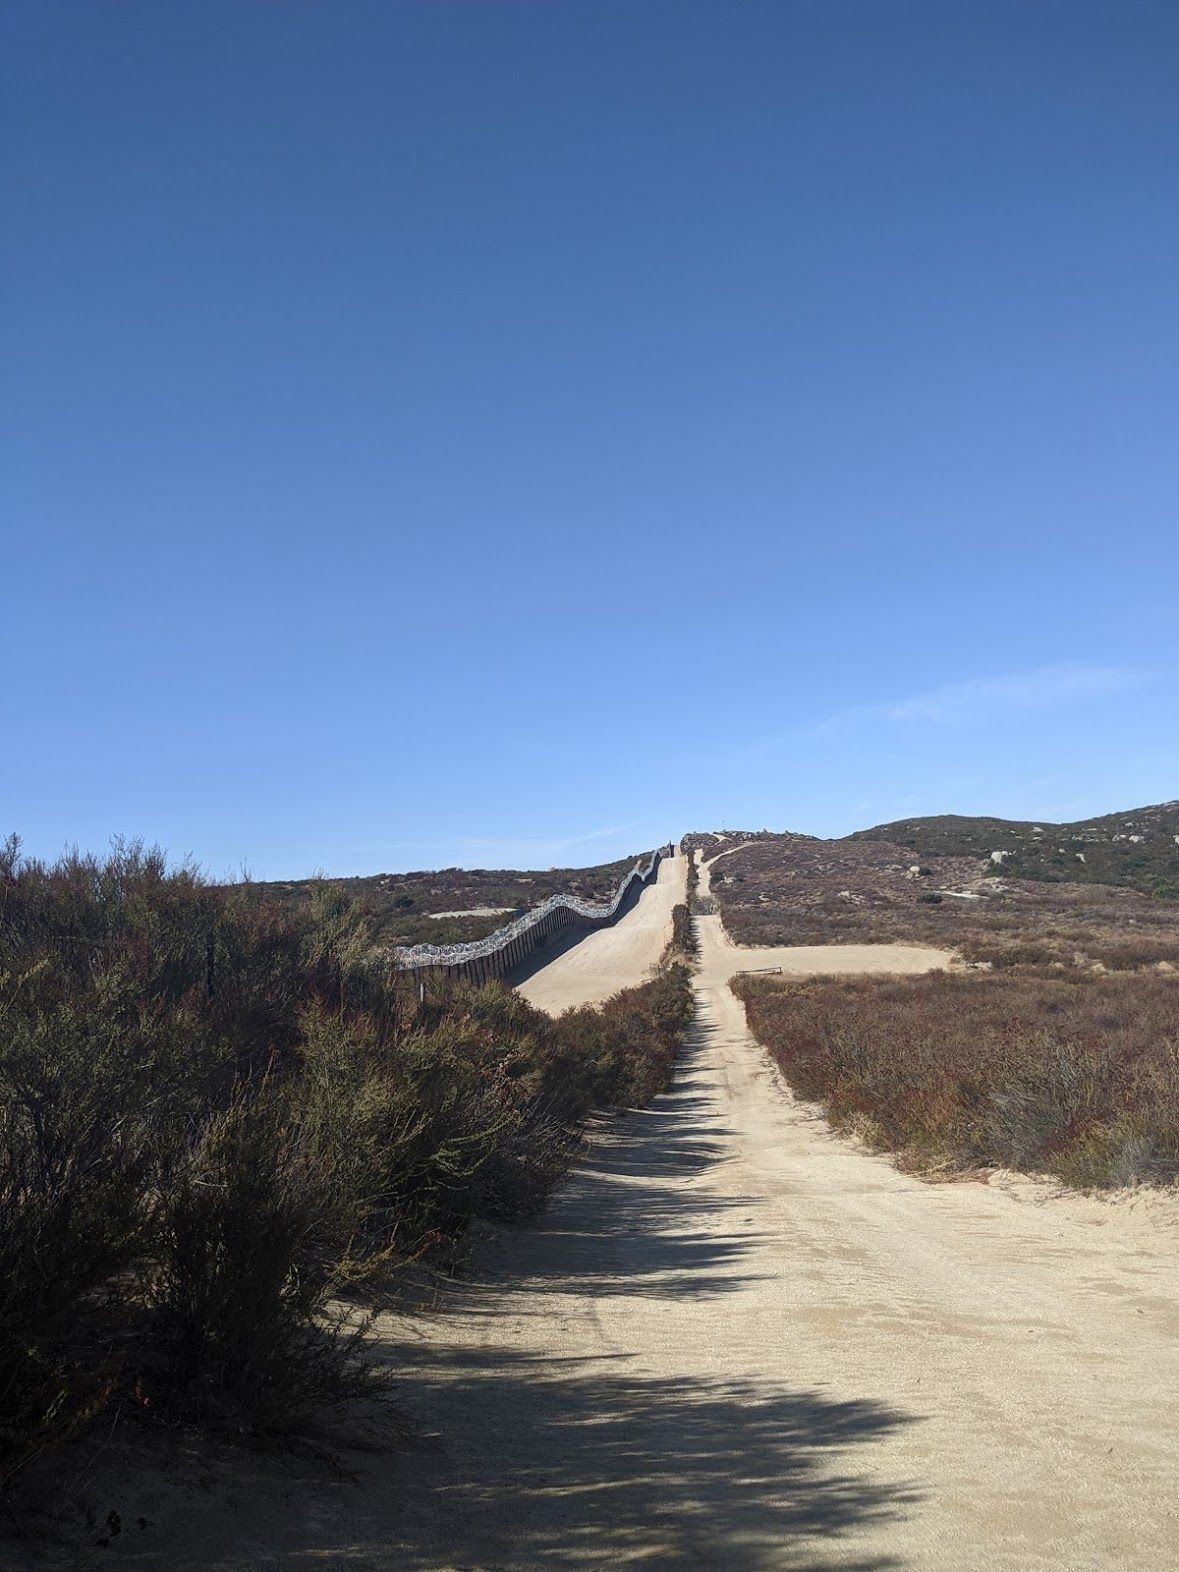 PCT SoBo Section A - Warner Springs to Campo & Mexican Border